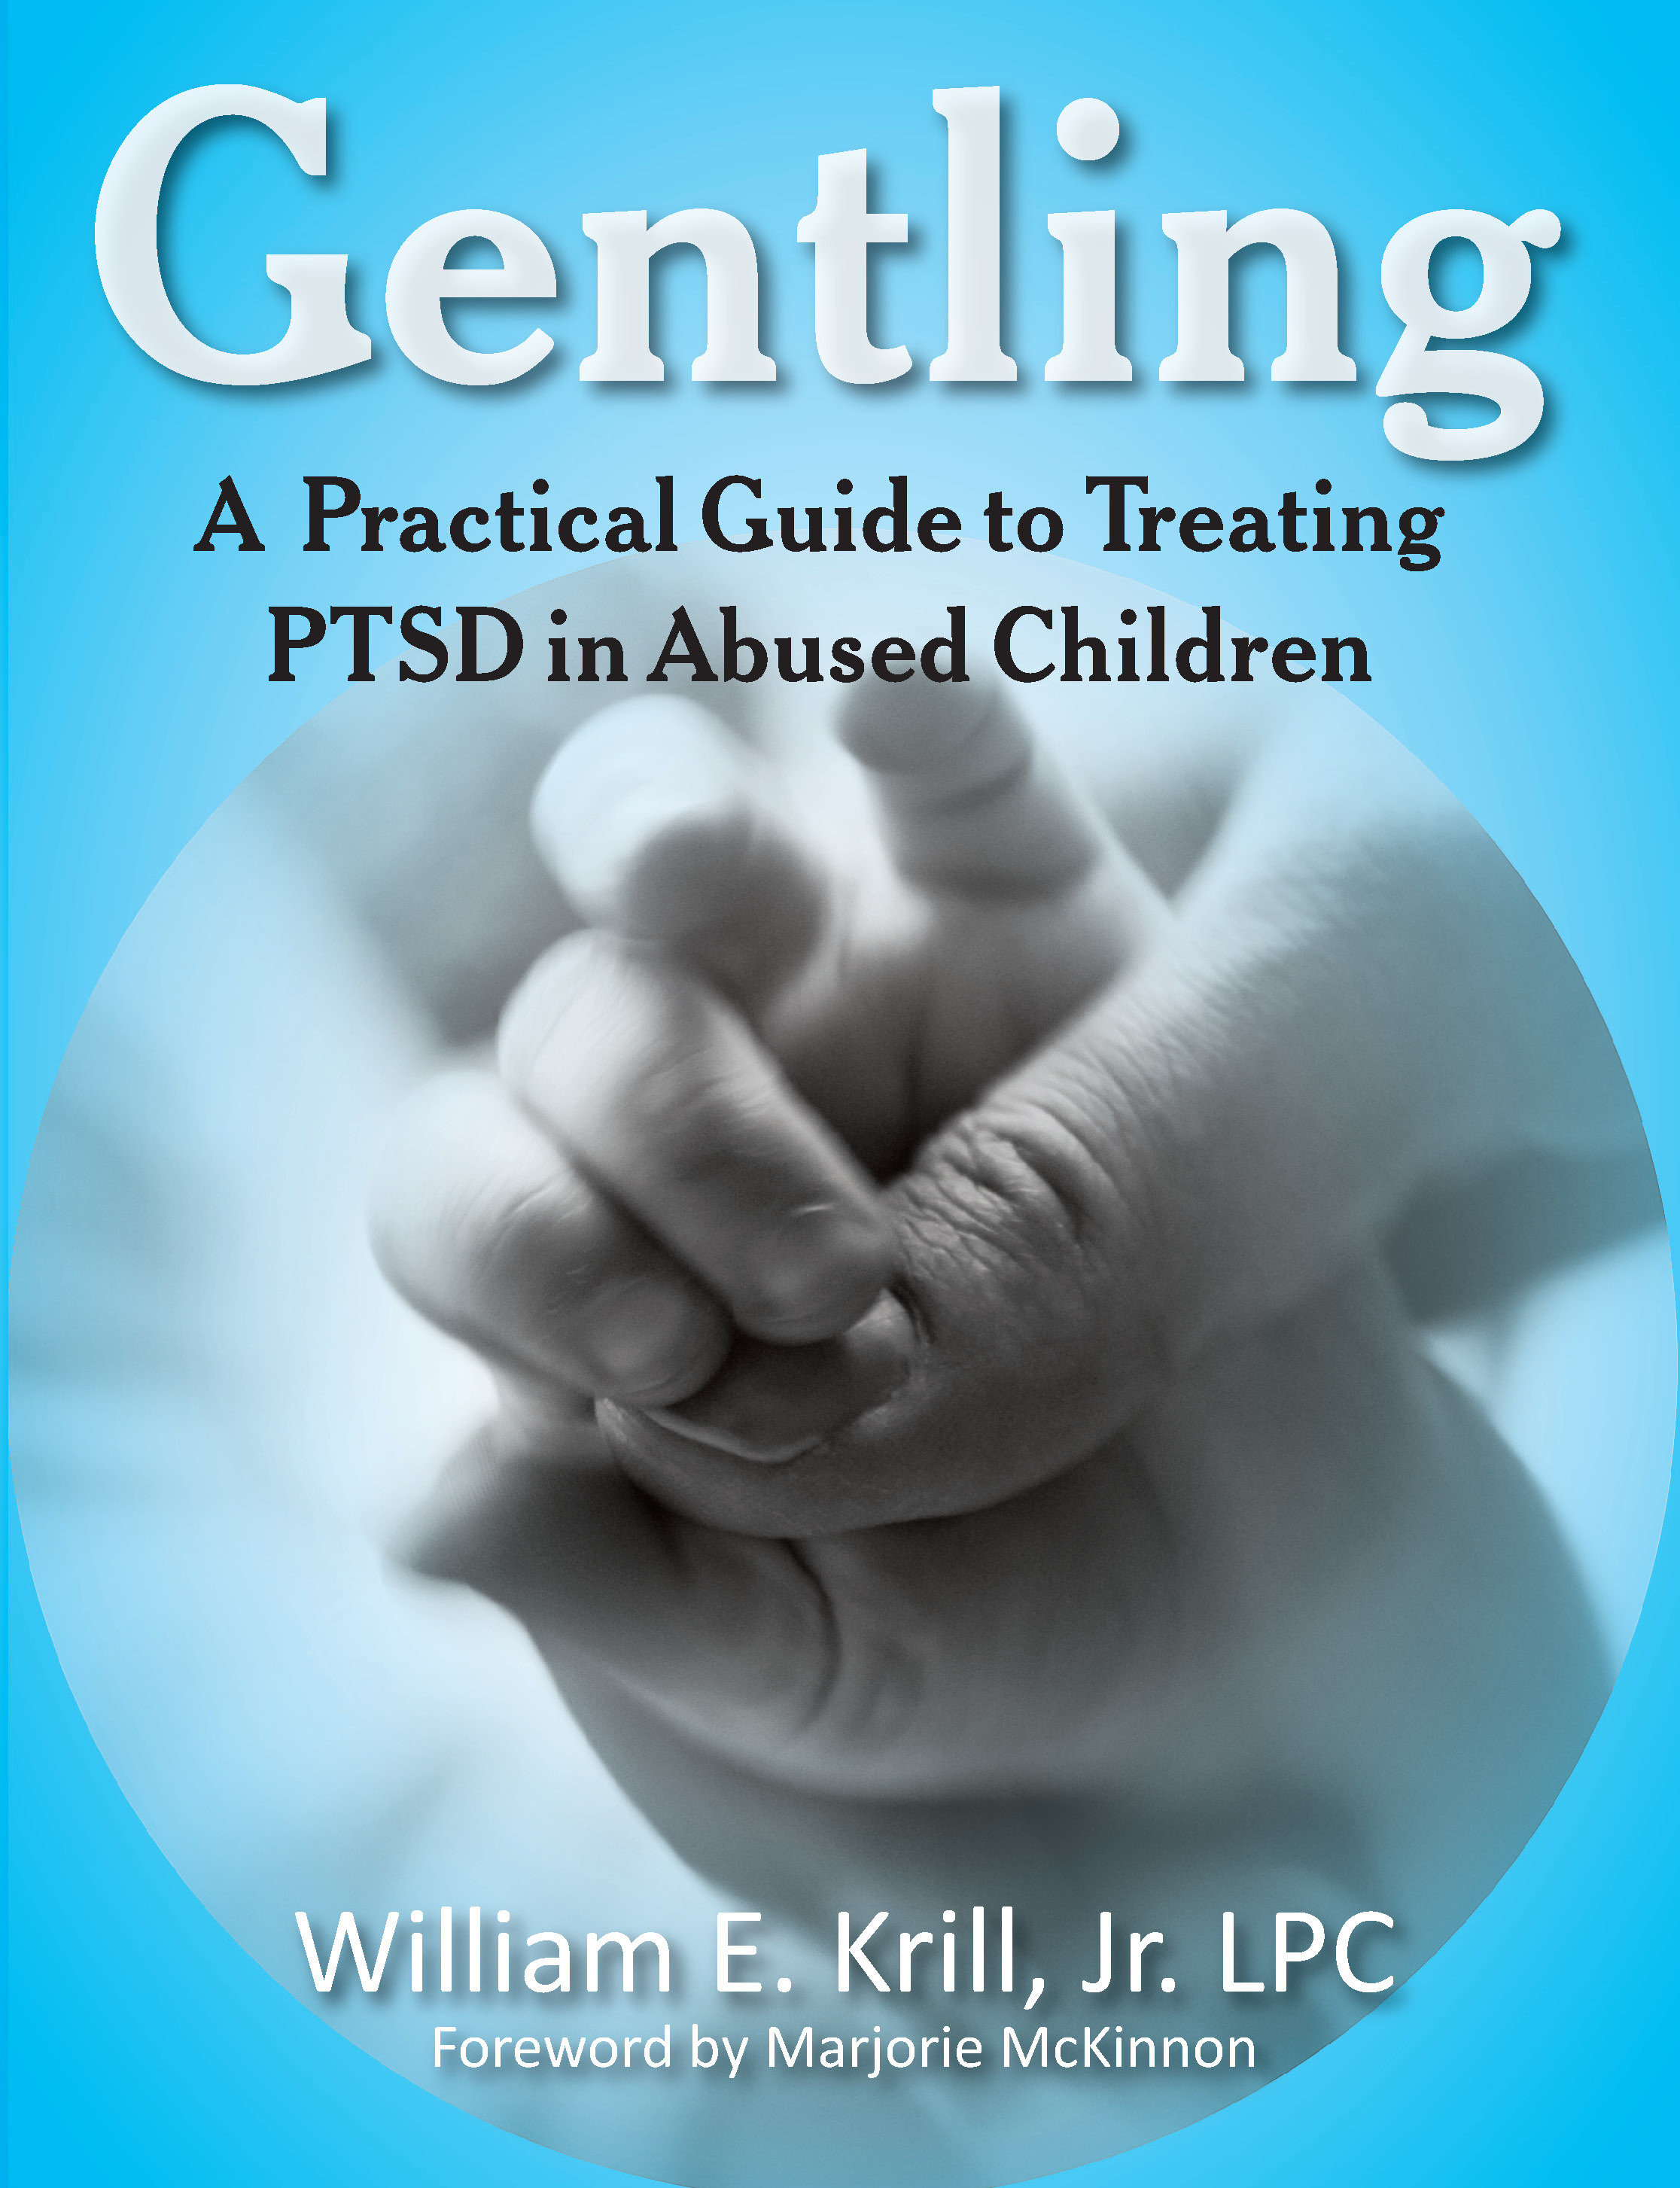 Gentling: A Practical Guide to Treating PTSD in Abused Children 978-161599-003-0